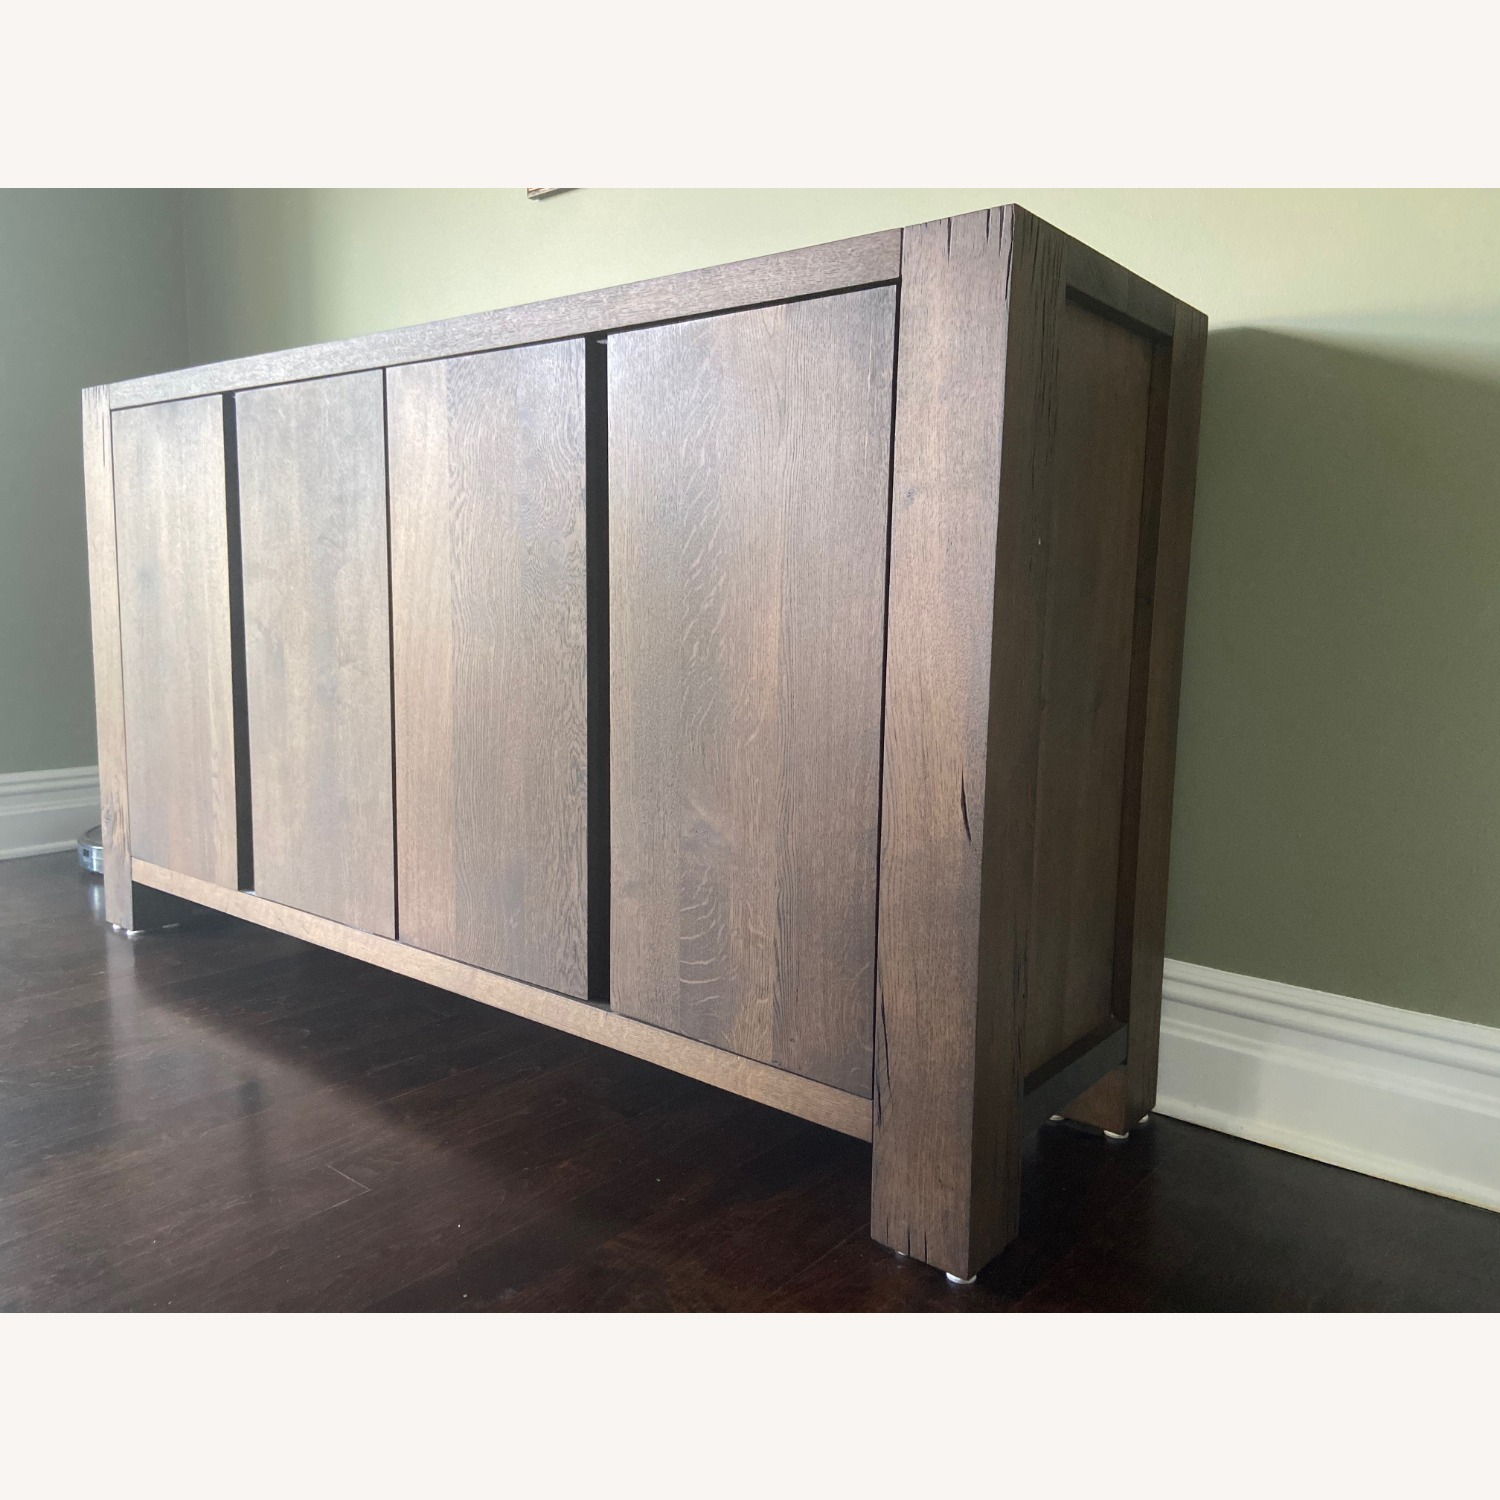 Crate and Barrel Charcoal Color Sideboard - image-2